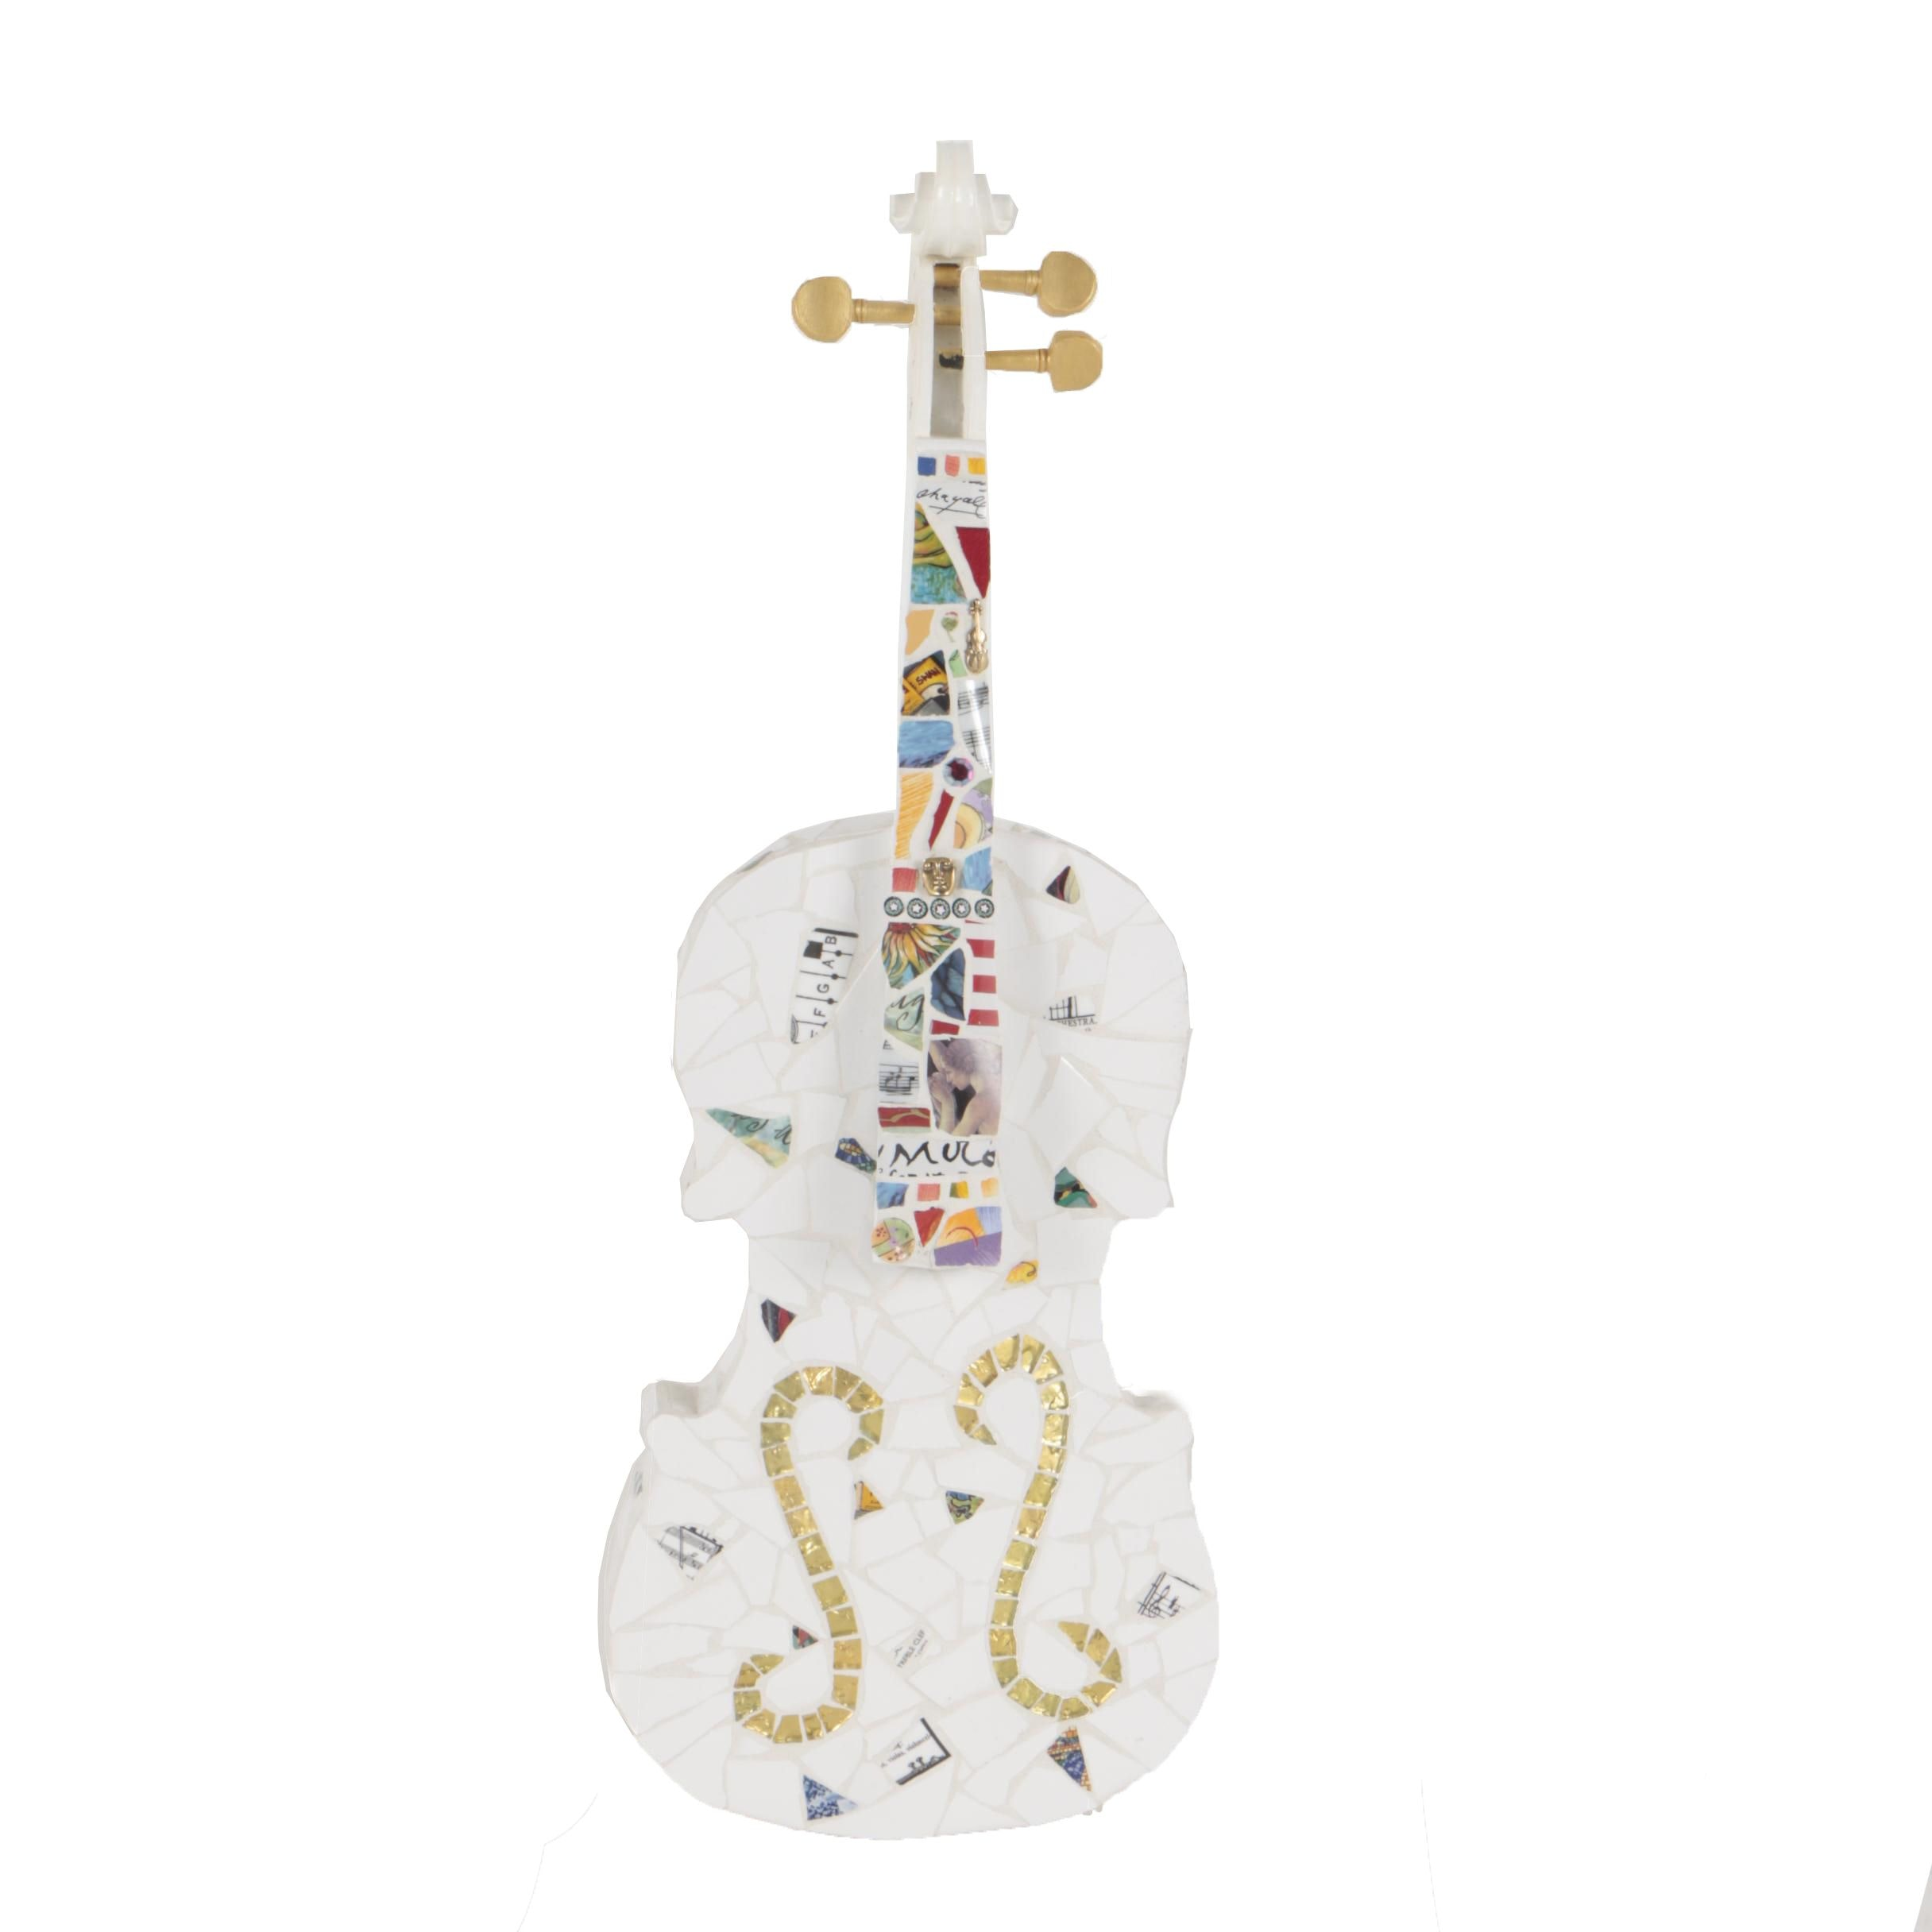 Chris Zonta Mosaic Violin Sculpture